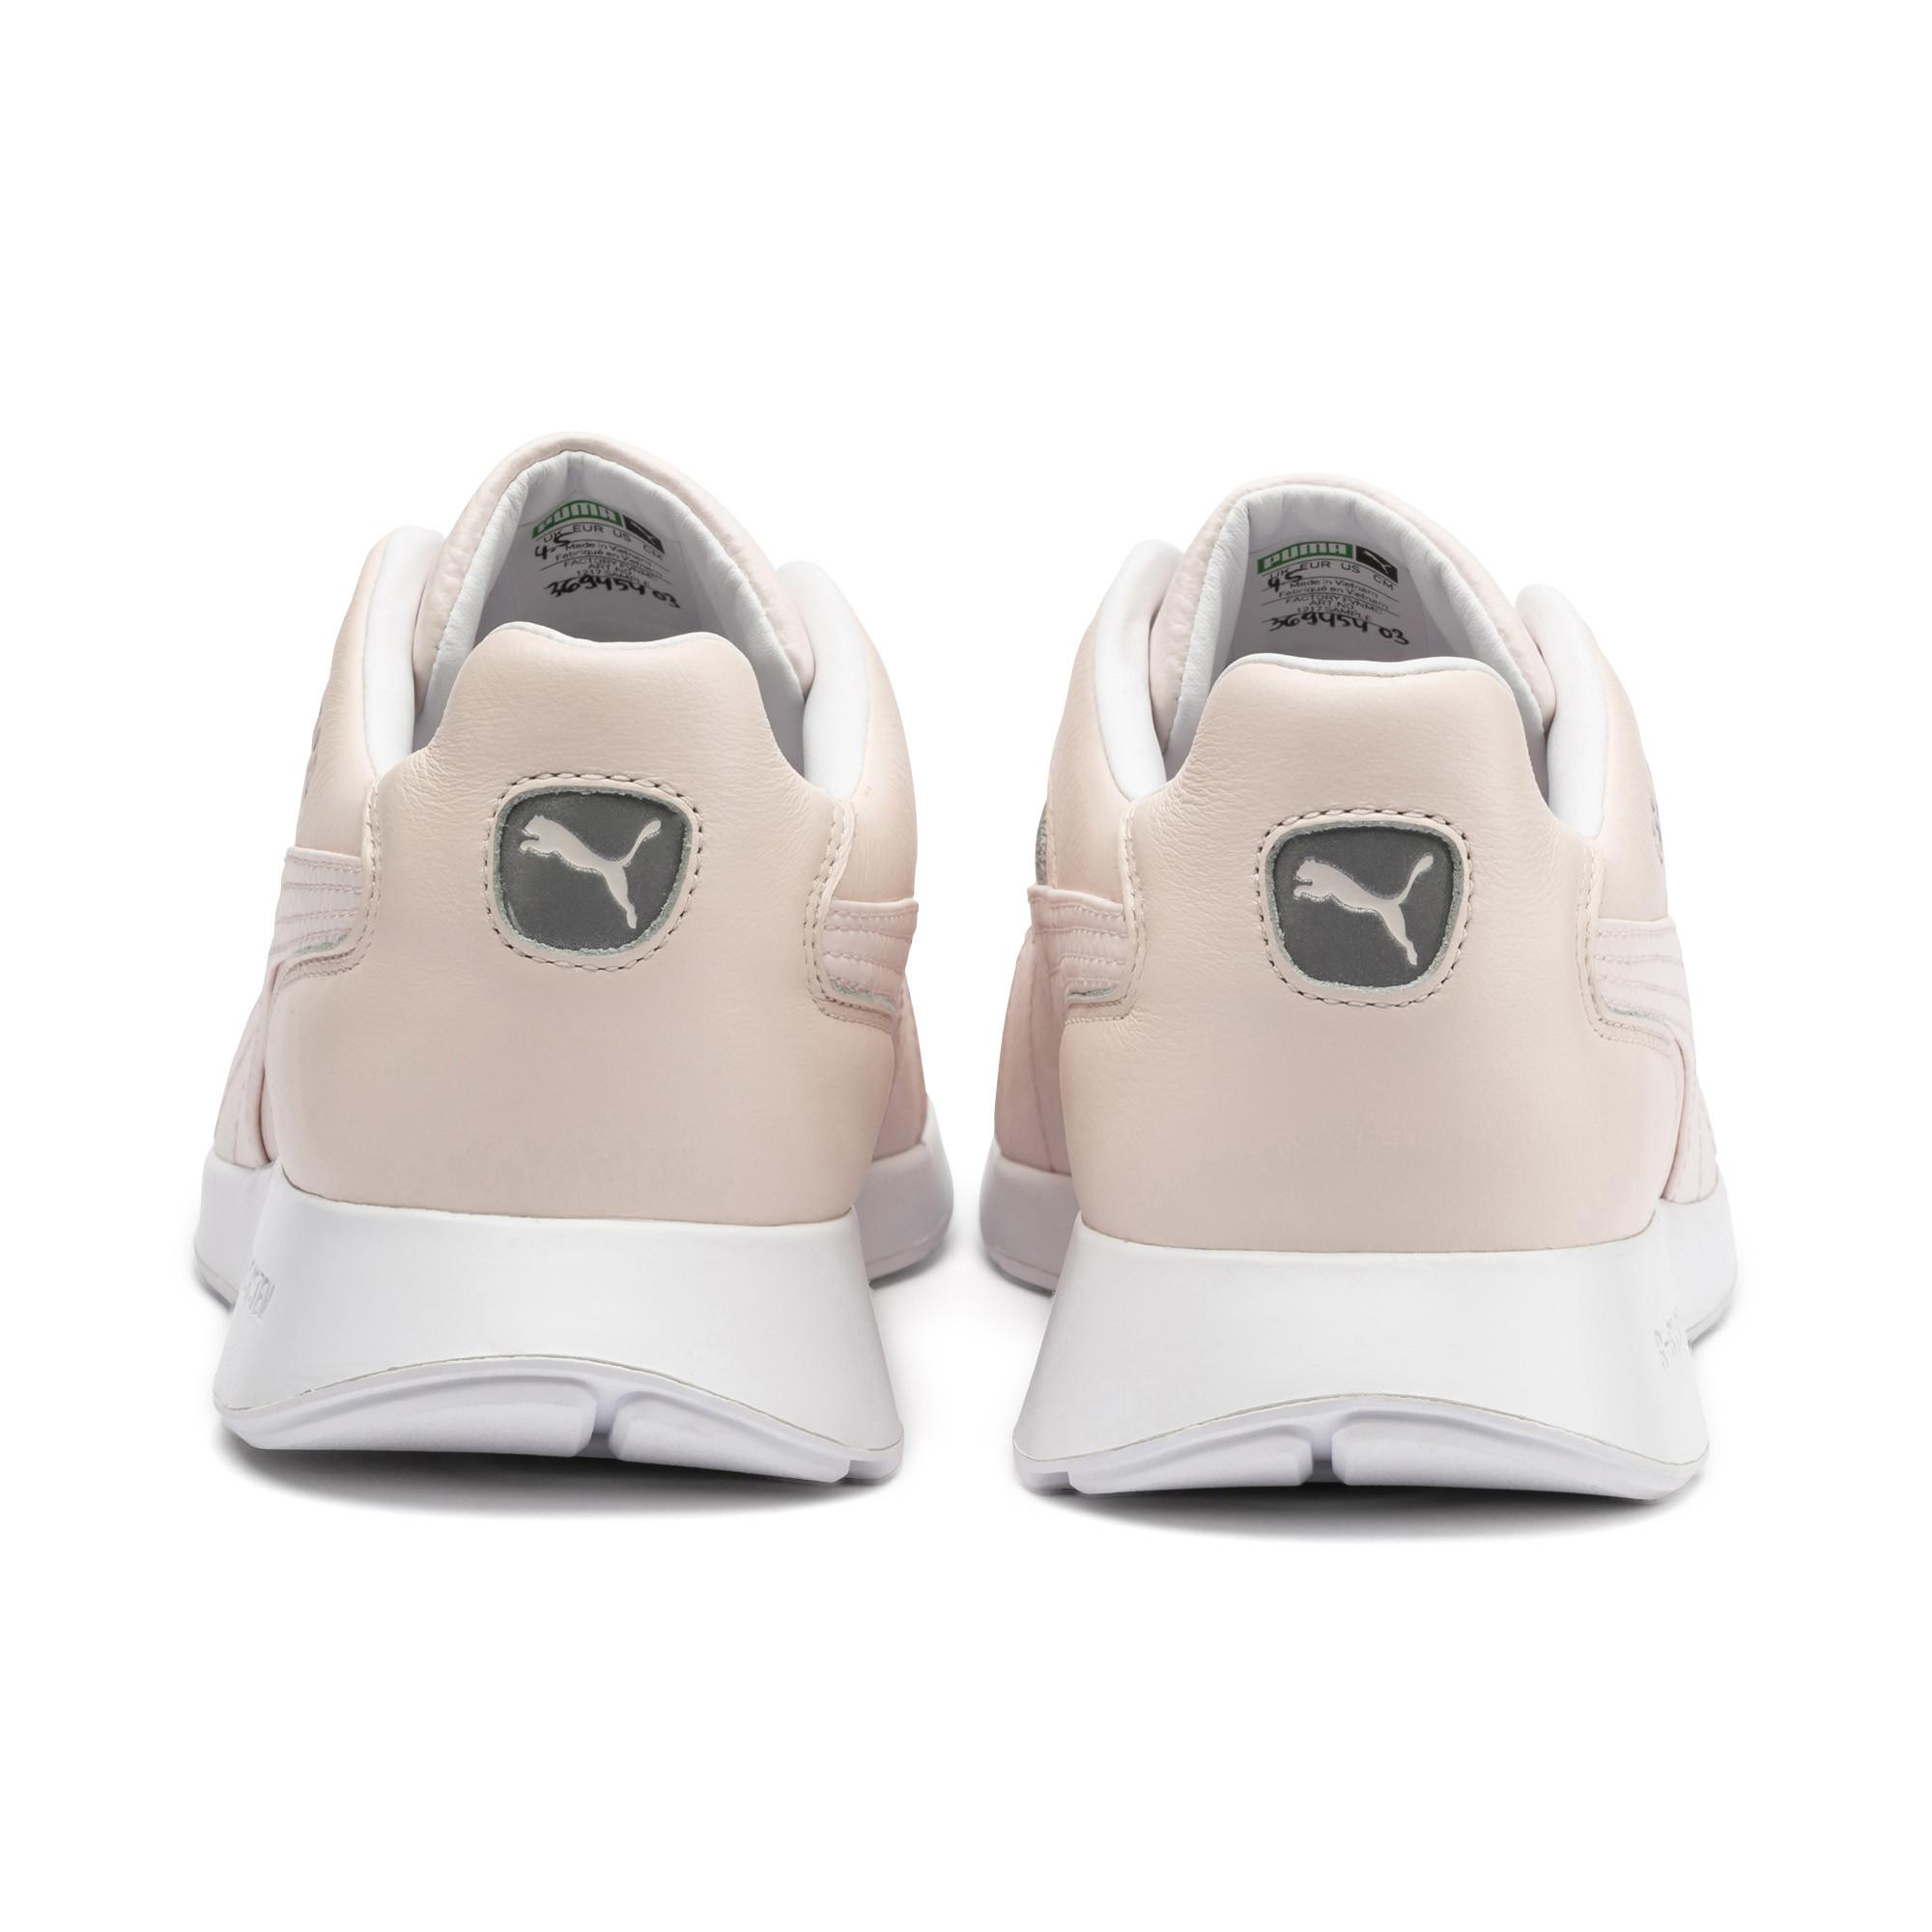 150 Women's Lyst Rs Puma Sneakers wqfxEtf